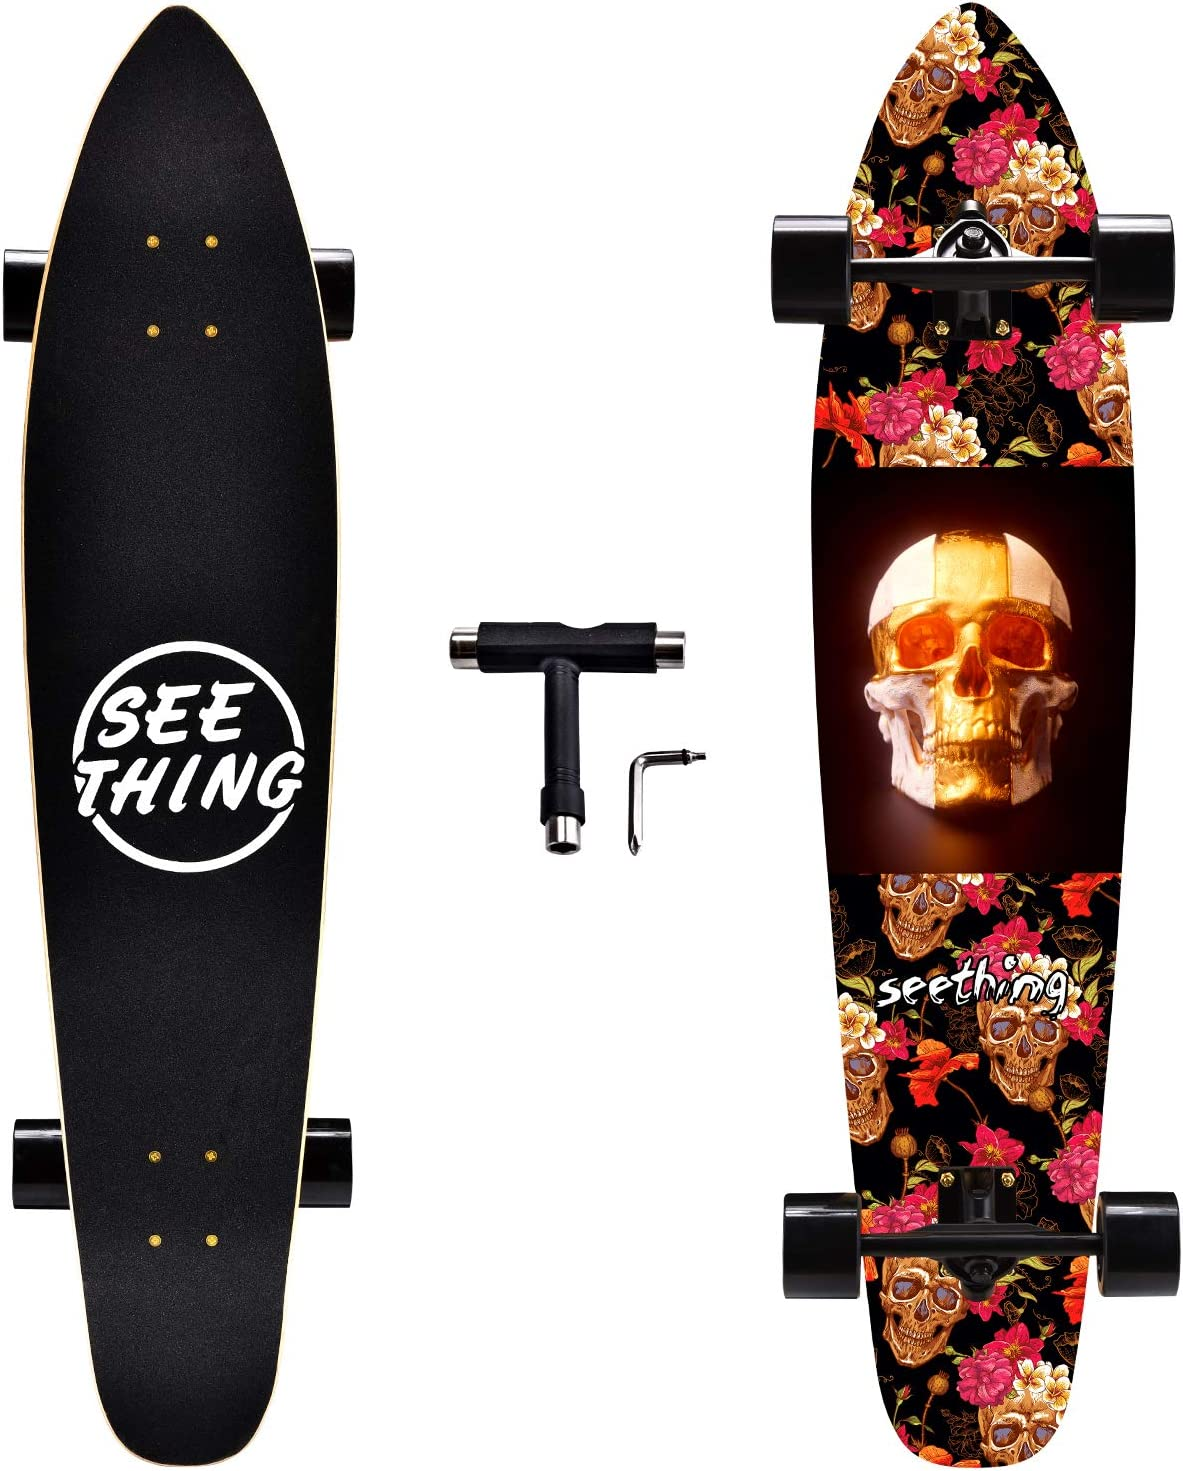 seething 42 Purchase Inch Longboard Skateboard Complete T Pintail Cruiser Outlet SALE